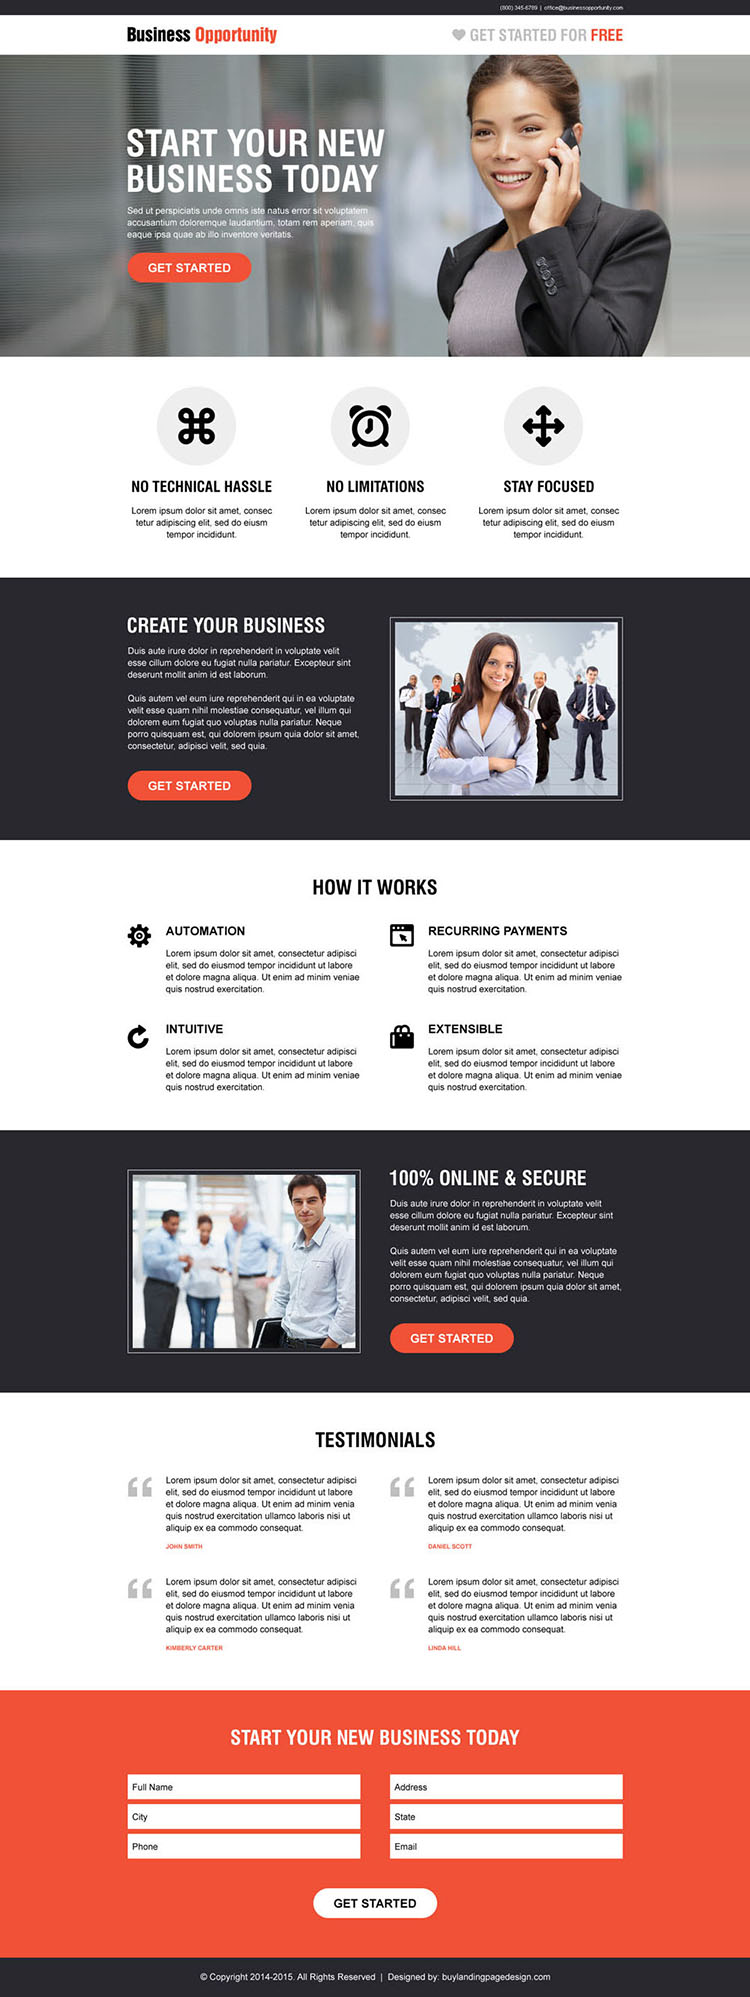 start you new business responsive call to action business opportunity landing page design